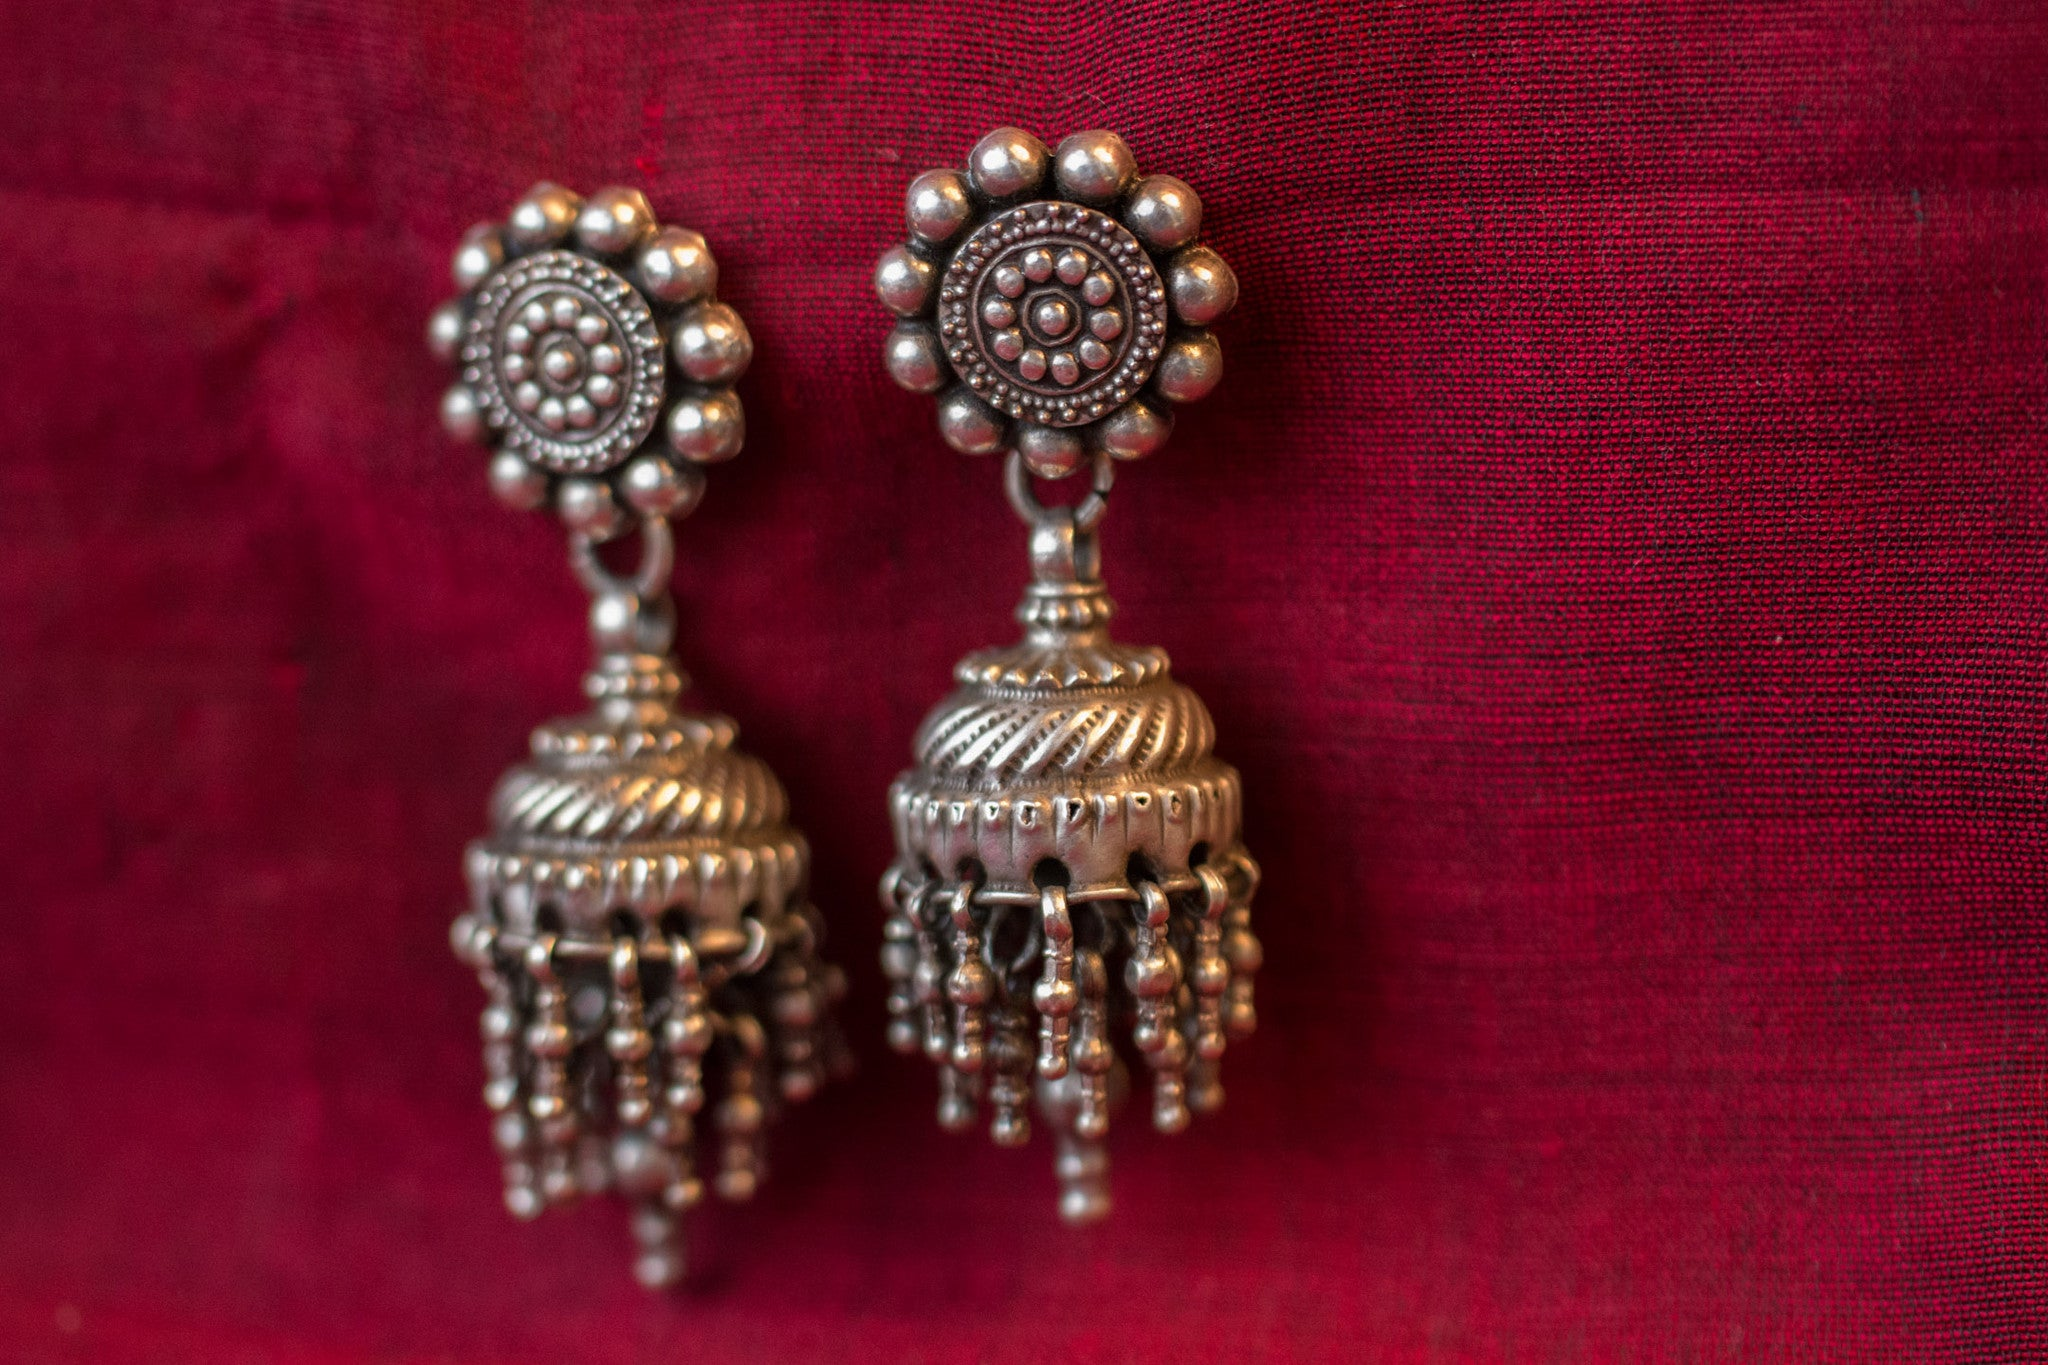 20a514-silver-amrapali-earrings-floral-top-chandelier-embossed-alternate-view